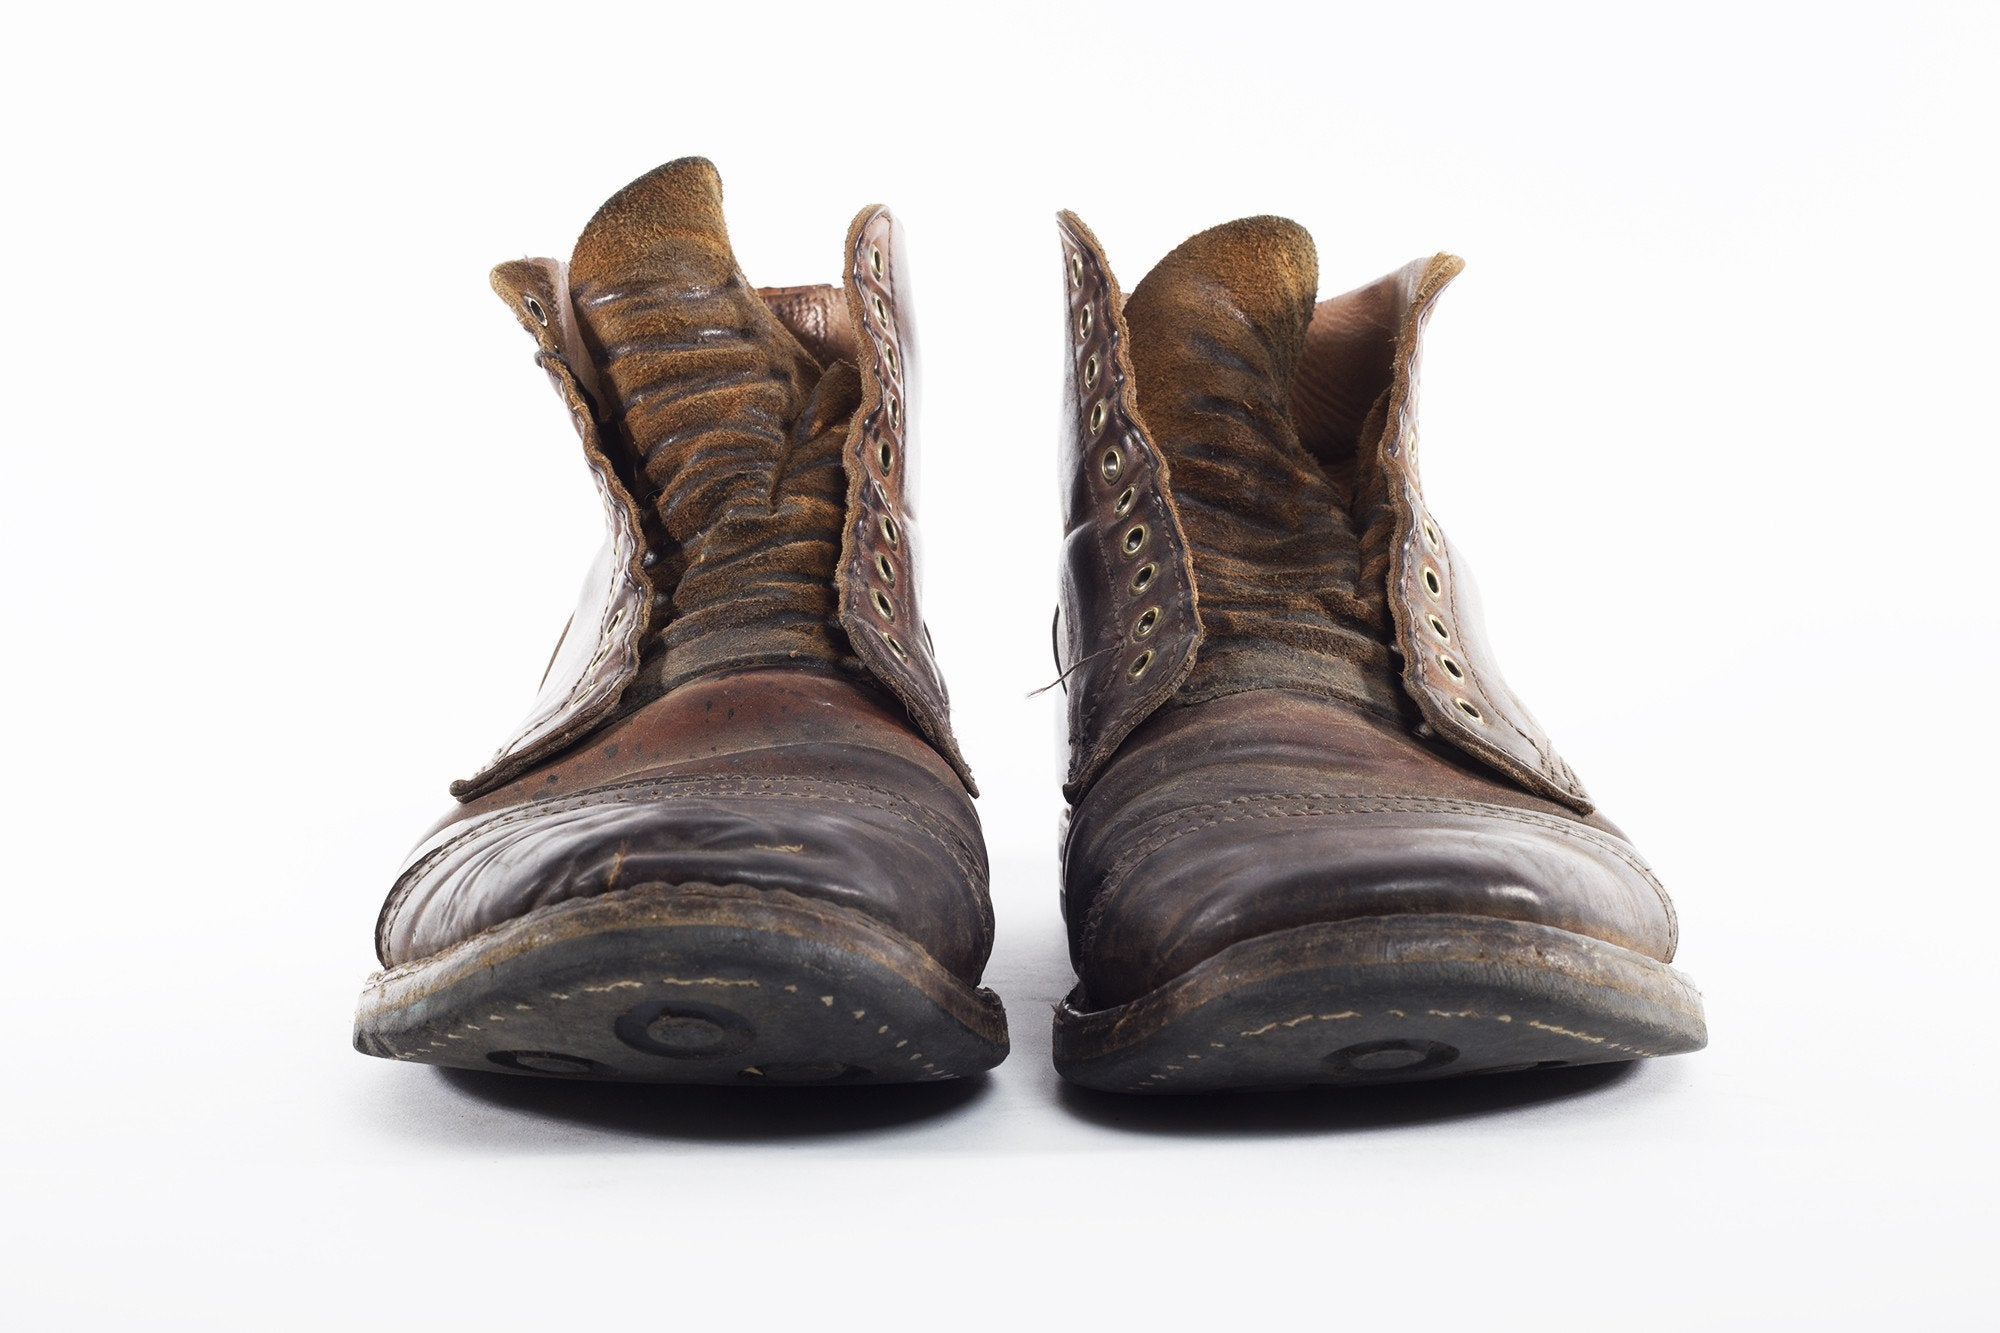 Repairs: Service Boot Natural Shell Cordovan